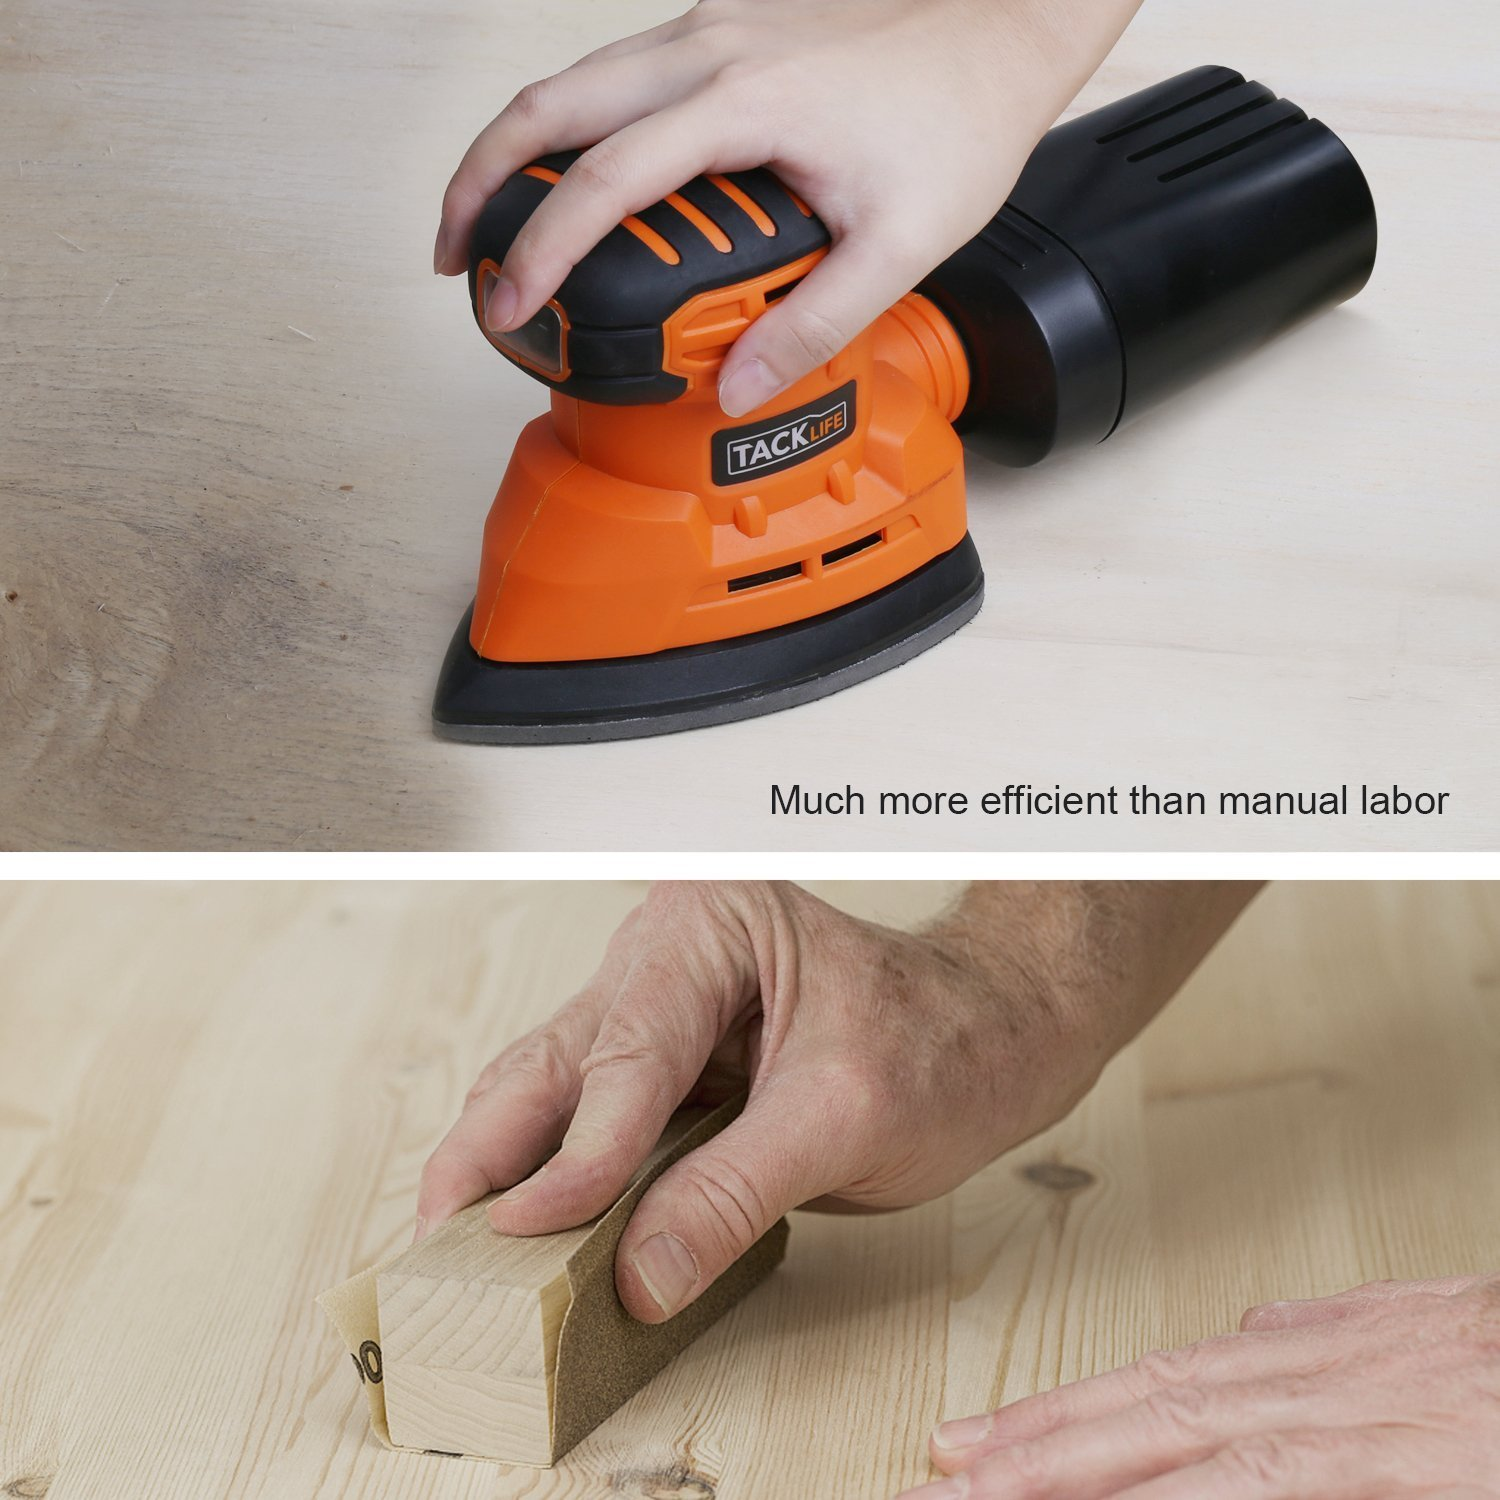 Mouse Detail Sander with 12Pcs Sanderpaper, 12000 OPM Sander with Dust Collection System For Tight Spaces Sanding in Home Decoration, DIY by TACKLIFE (Image #5)